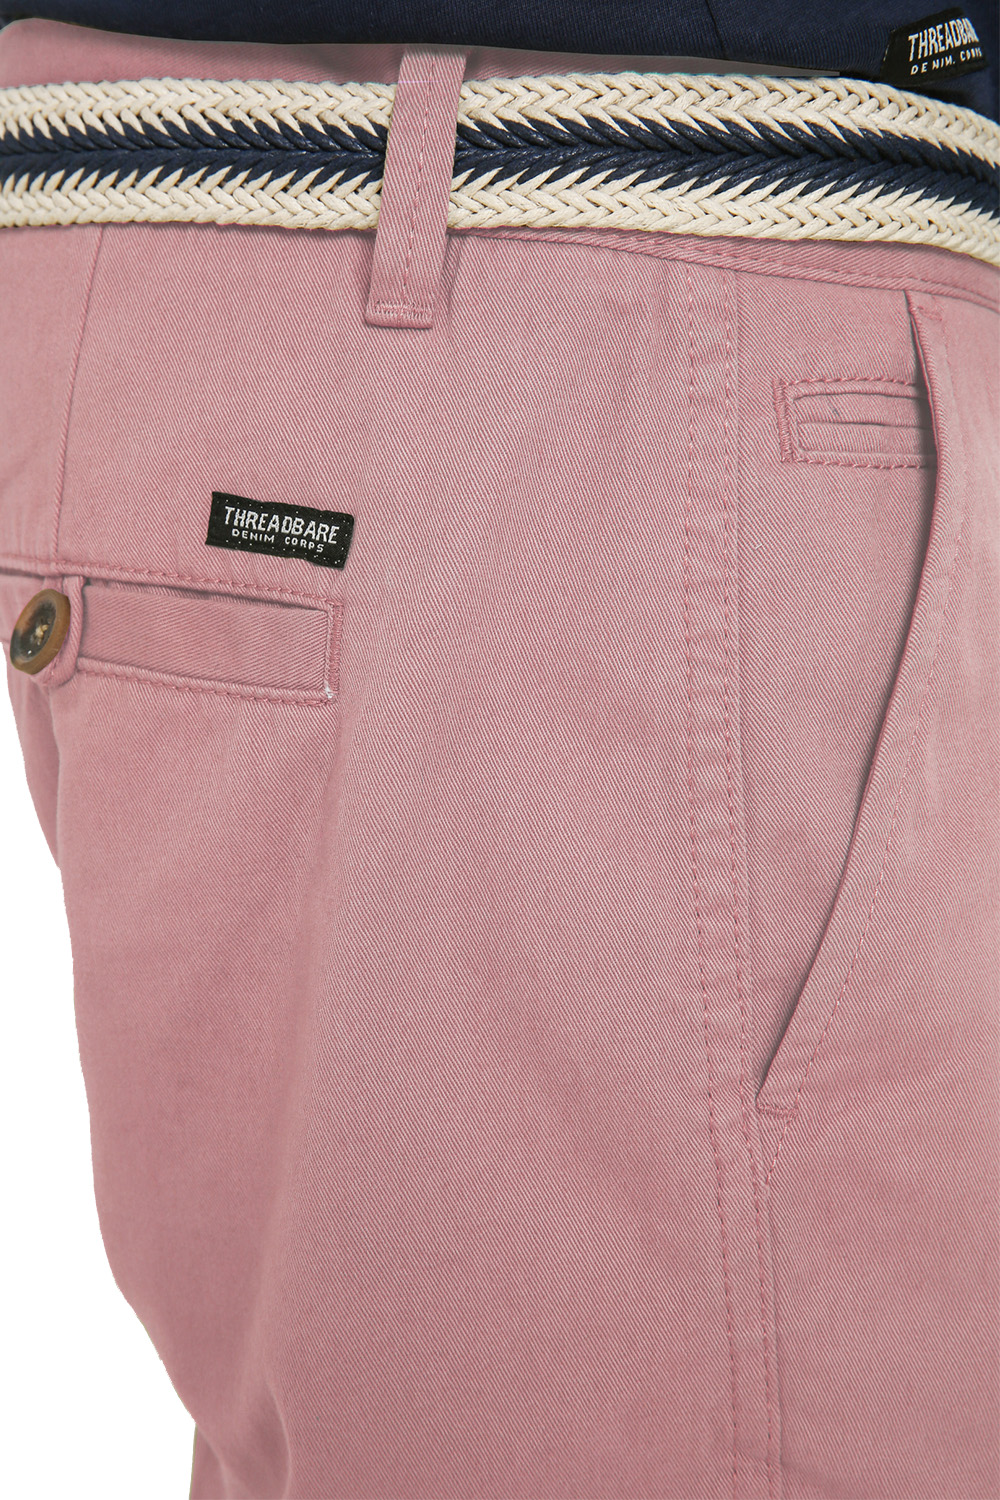 Threadbare-Mens-Slim-Fit-Belted-Chino-Shorts-Summer-Casual-Cotton-Smart-Bottoms thumbnail 40